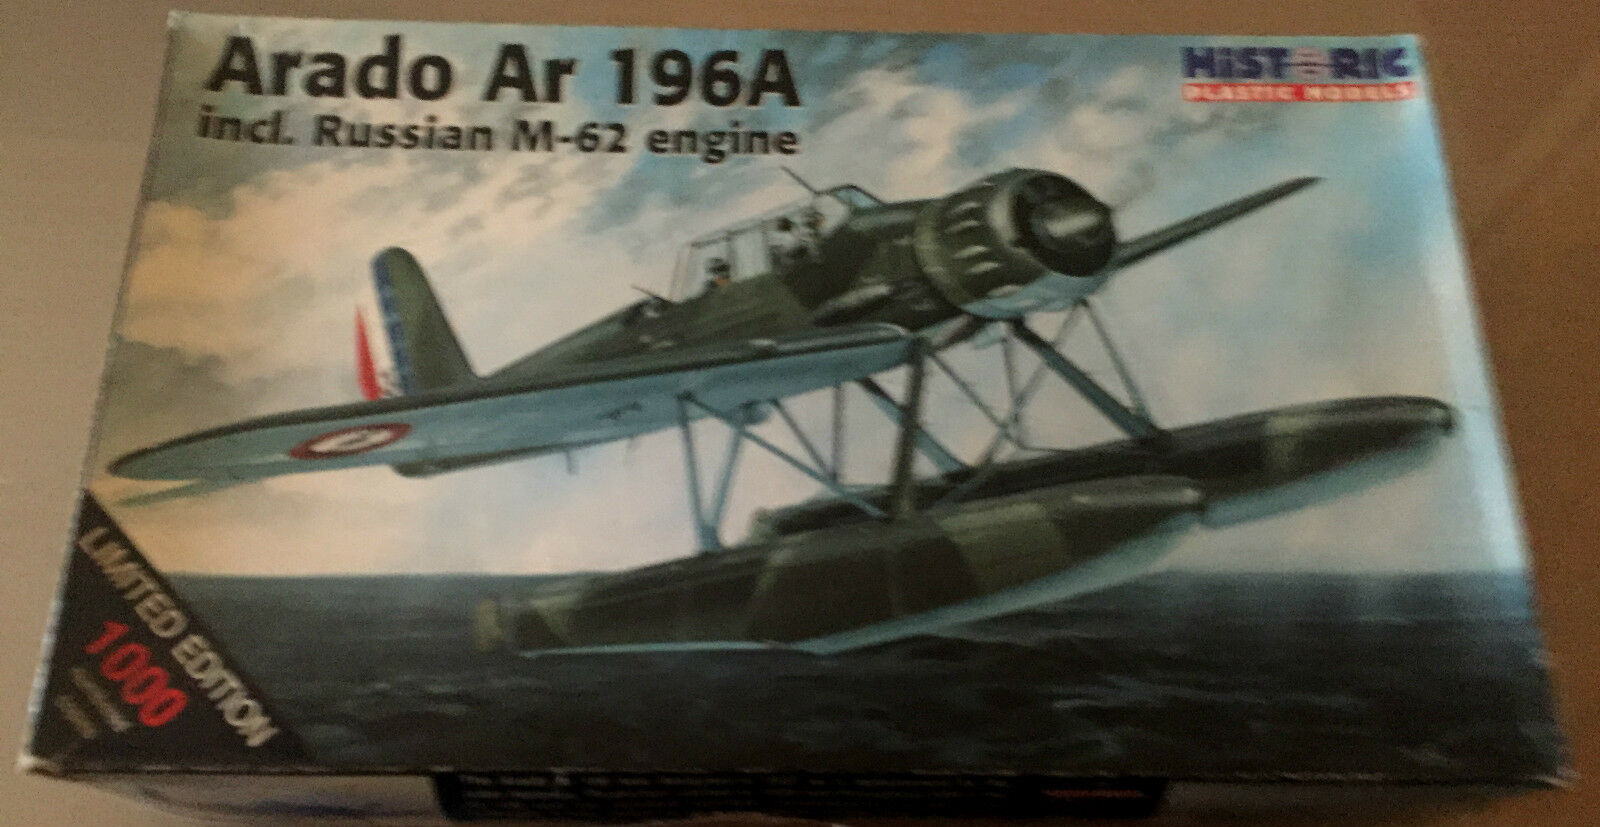 HISTORIC PLASTIC MODELS 48-502 - 1 1 1 48 ARADO Ar 196A LIMITED EDITION 8637b6